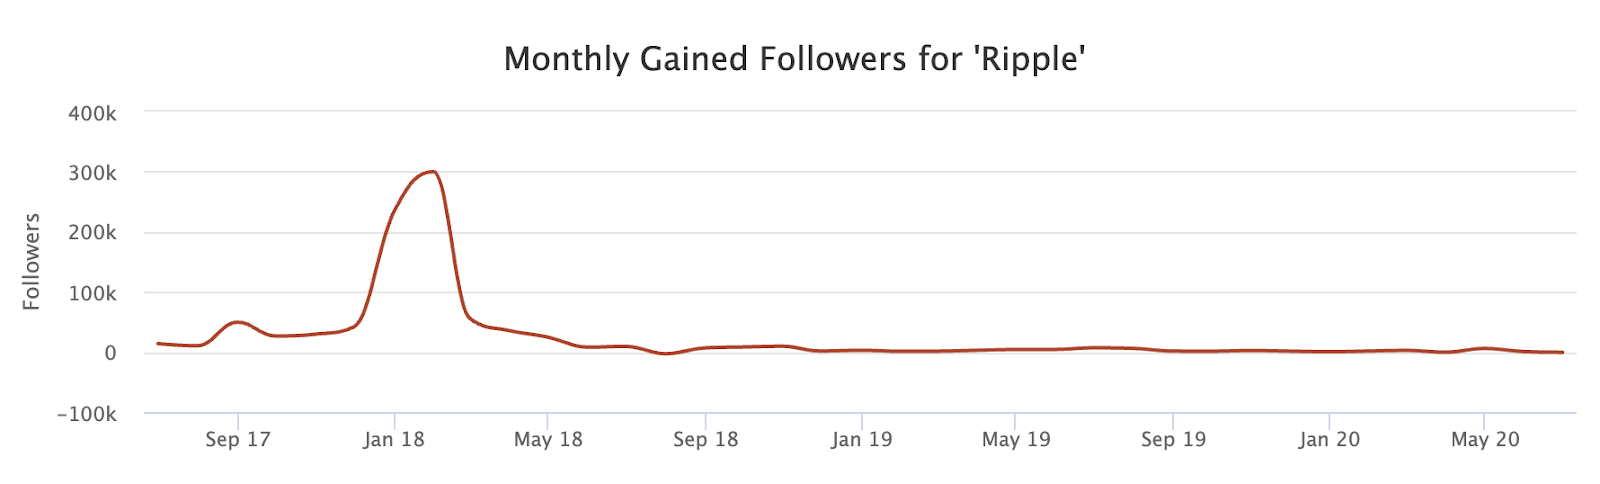 Ripple Monthly Gained Followers on Social Blade